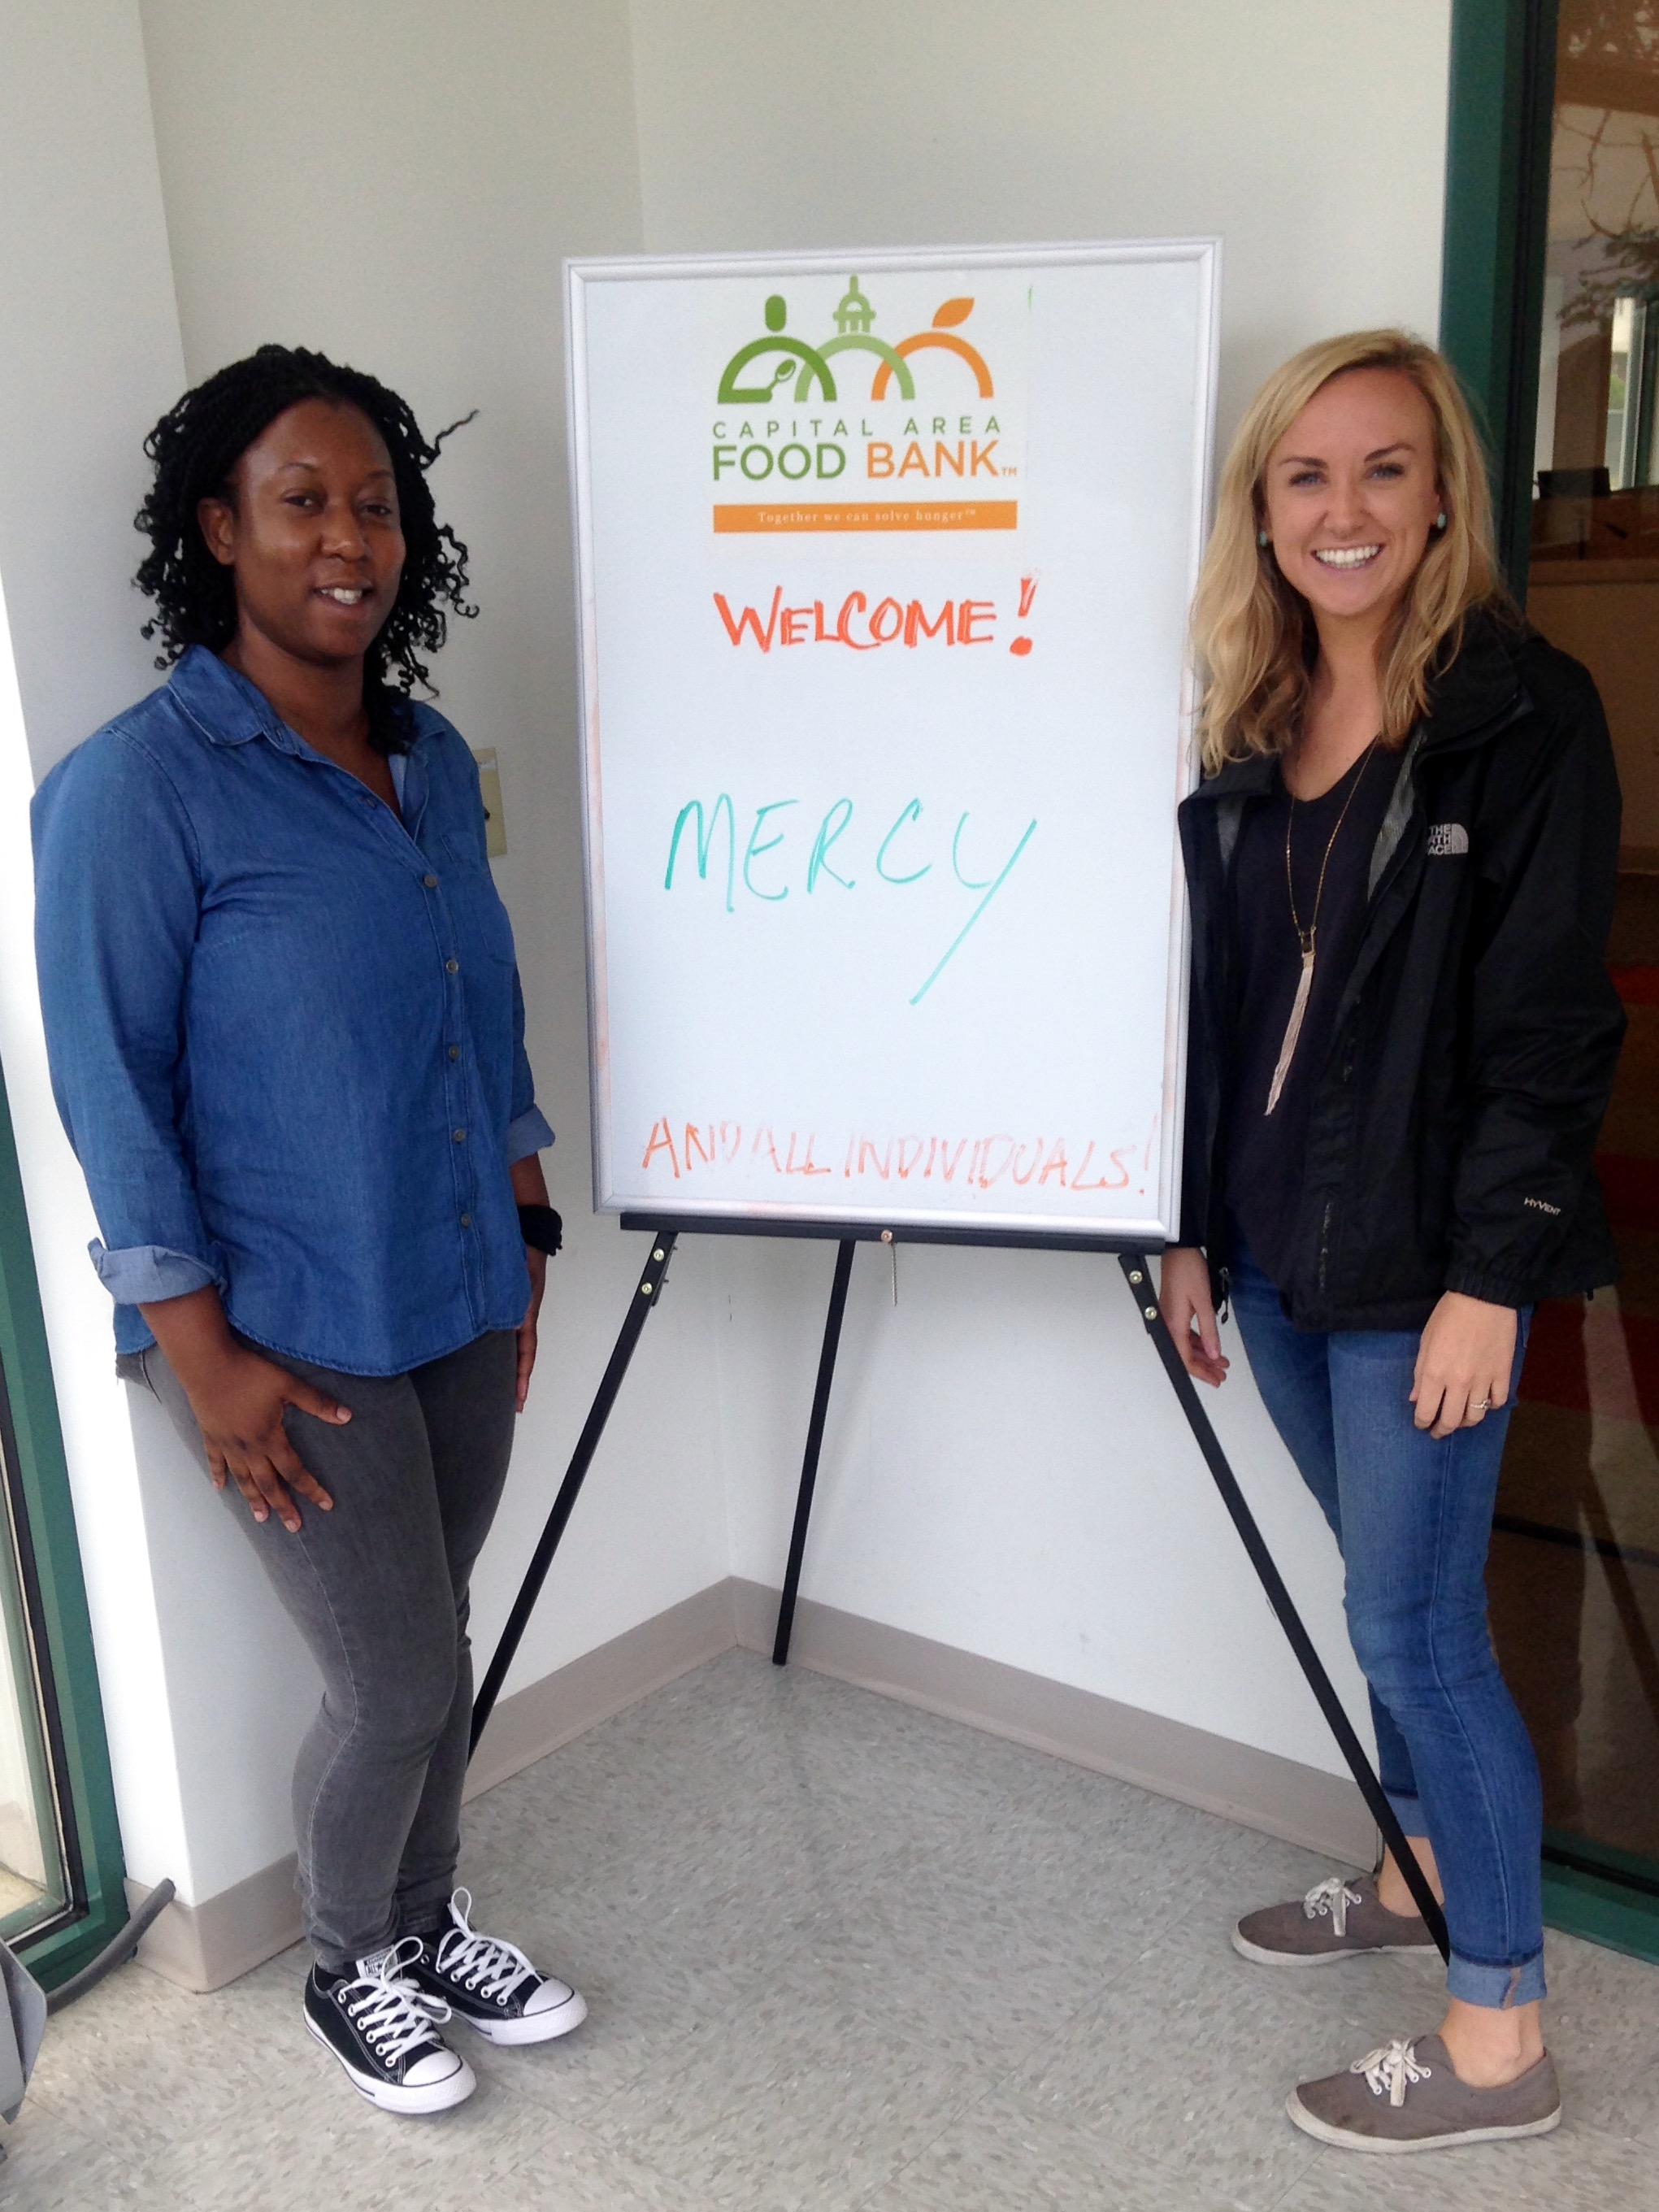 Our DC team, Mercy and Casey, at their Day of Service at Capital City Food Bank